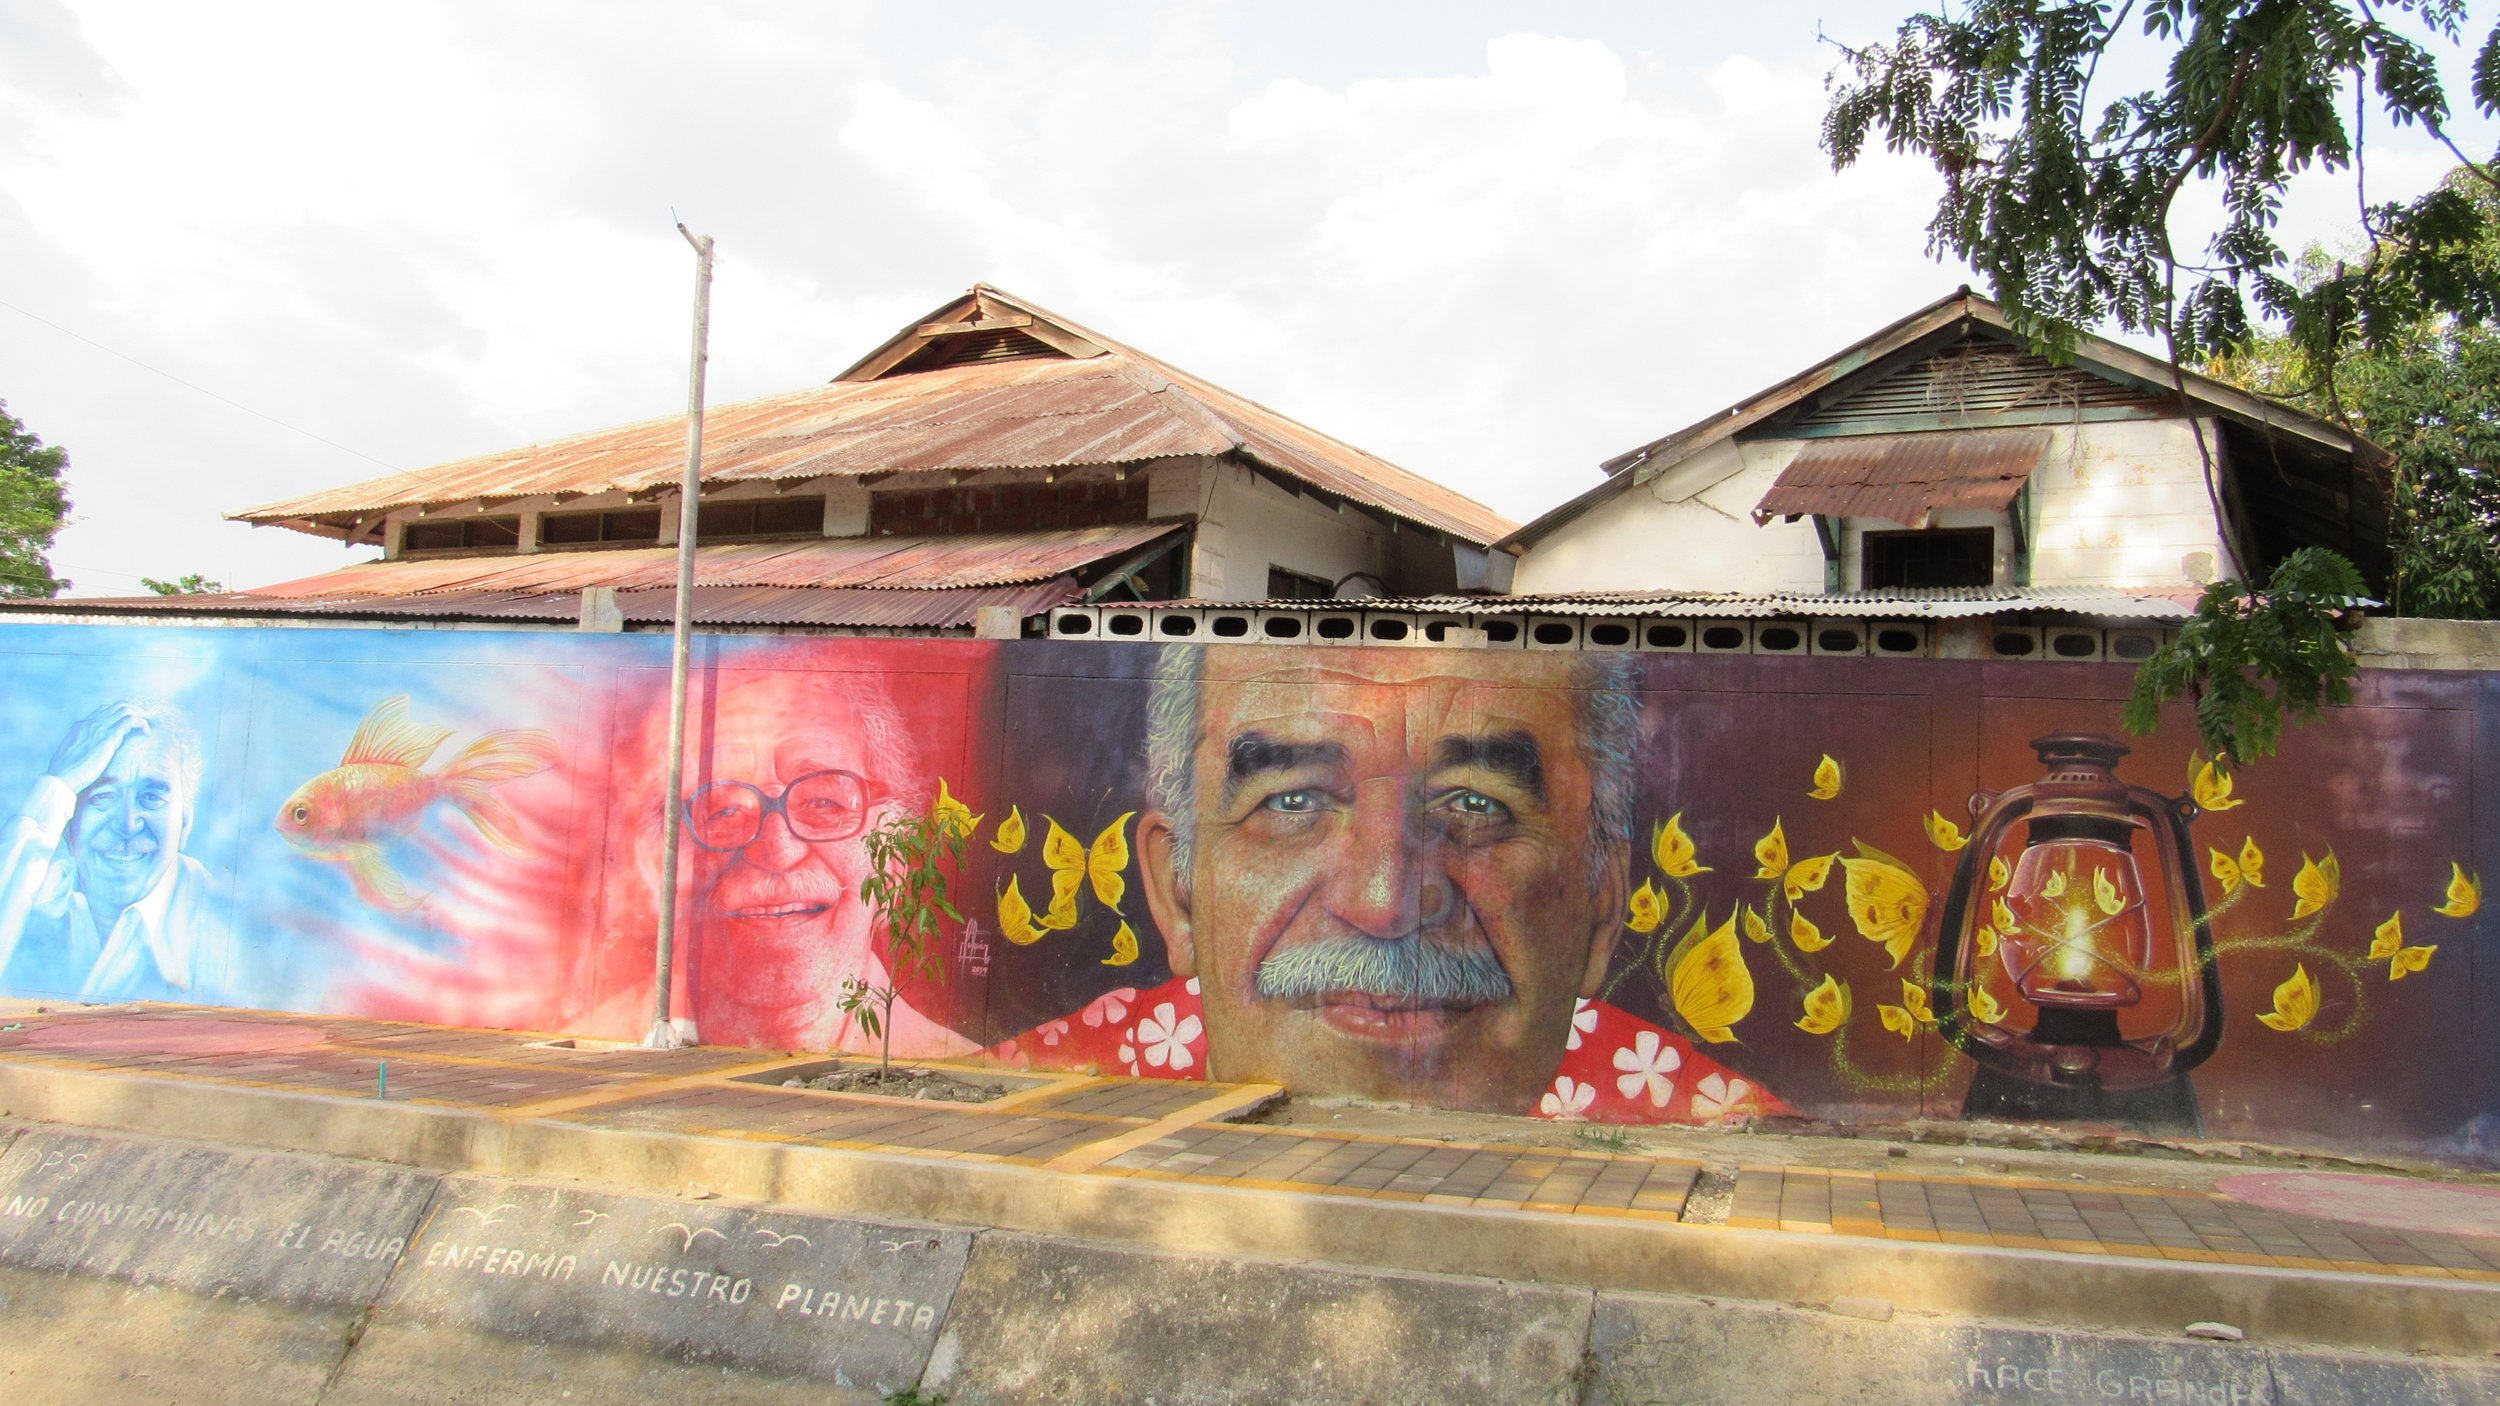 Murals along the canal, with the old banana plantation housing for the Americans on the other side